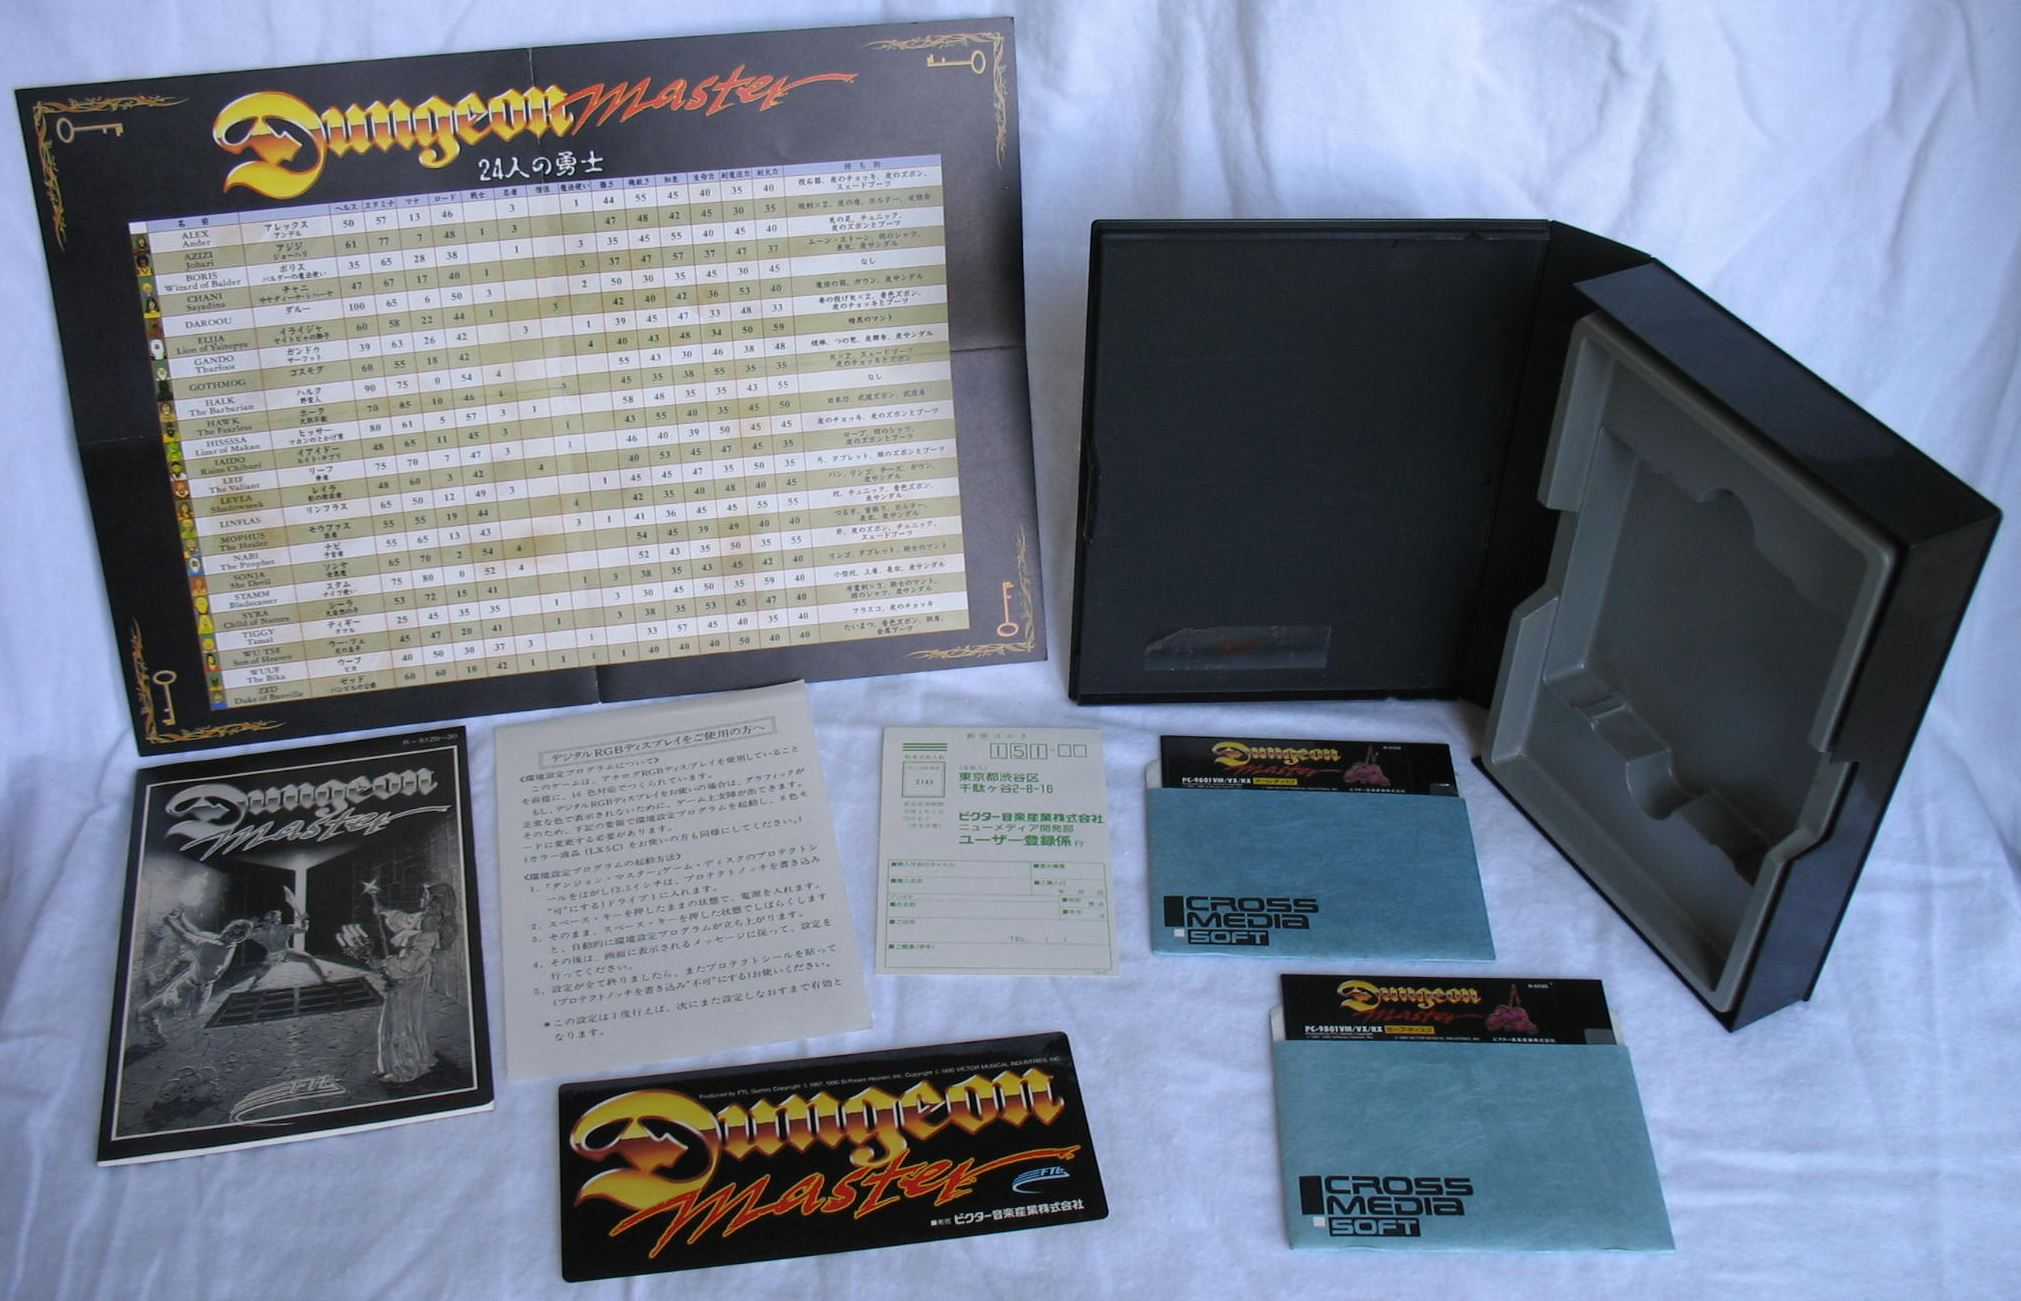 Game - Dungeon Master - JP - PC-9801 - 5.25-inch - All - Overview - Photo